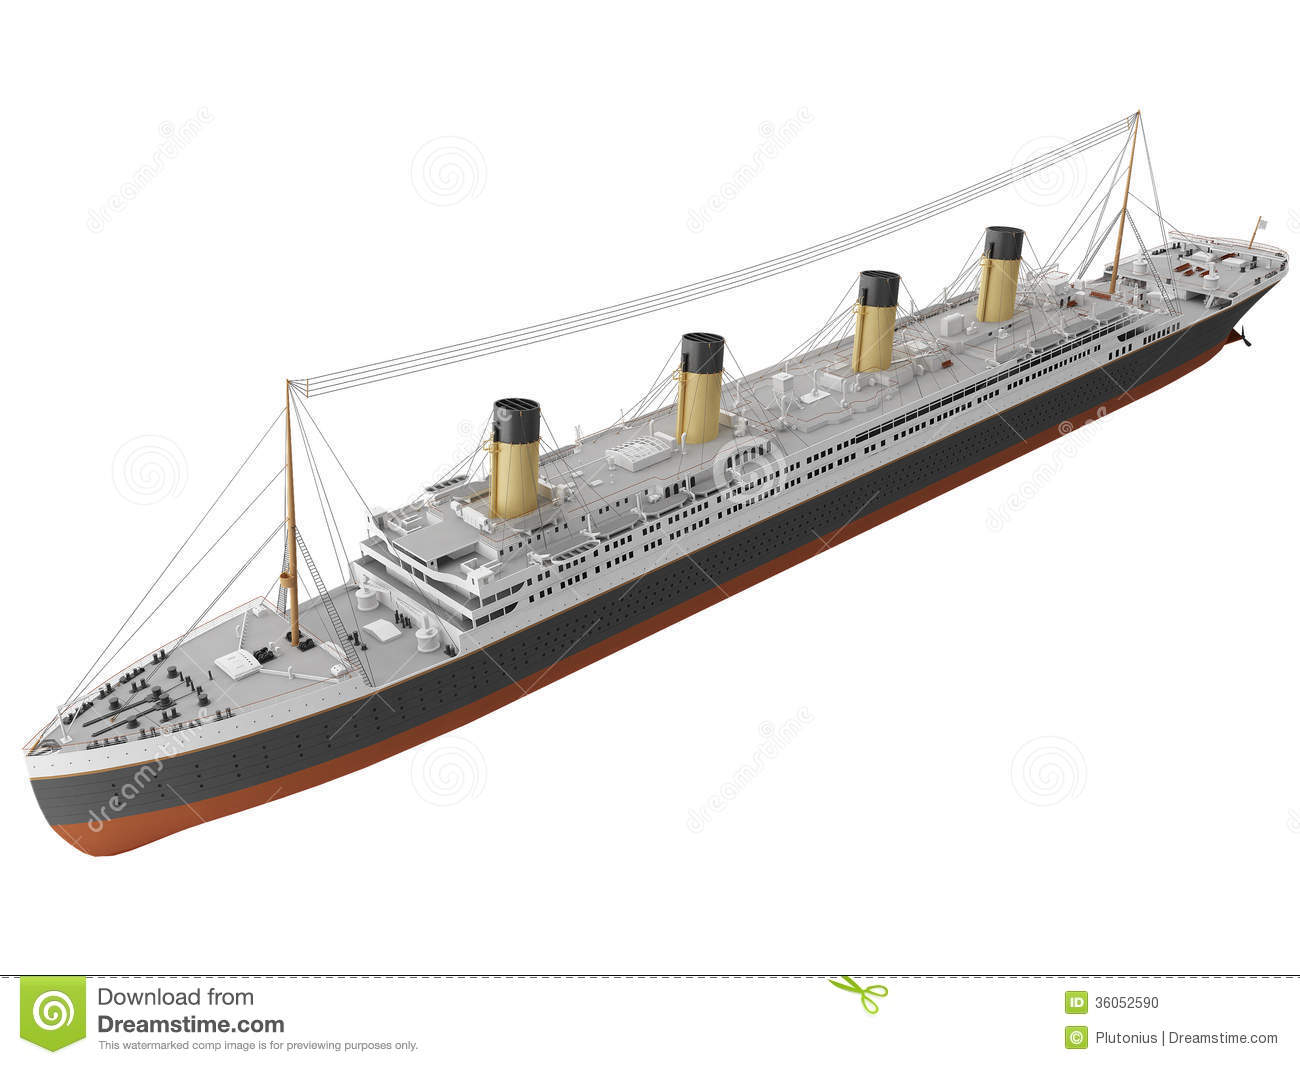 3d Rendering Of A Early 1900s Steamliner Stock Photo - Image: 36052590